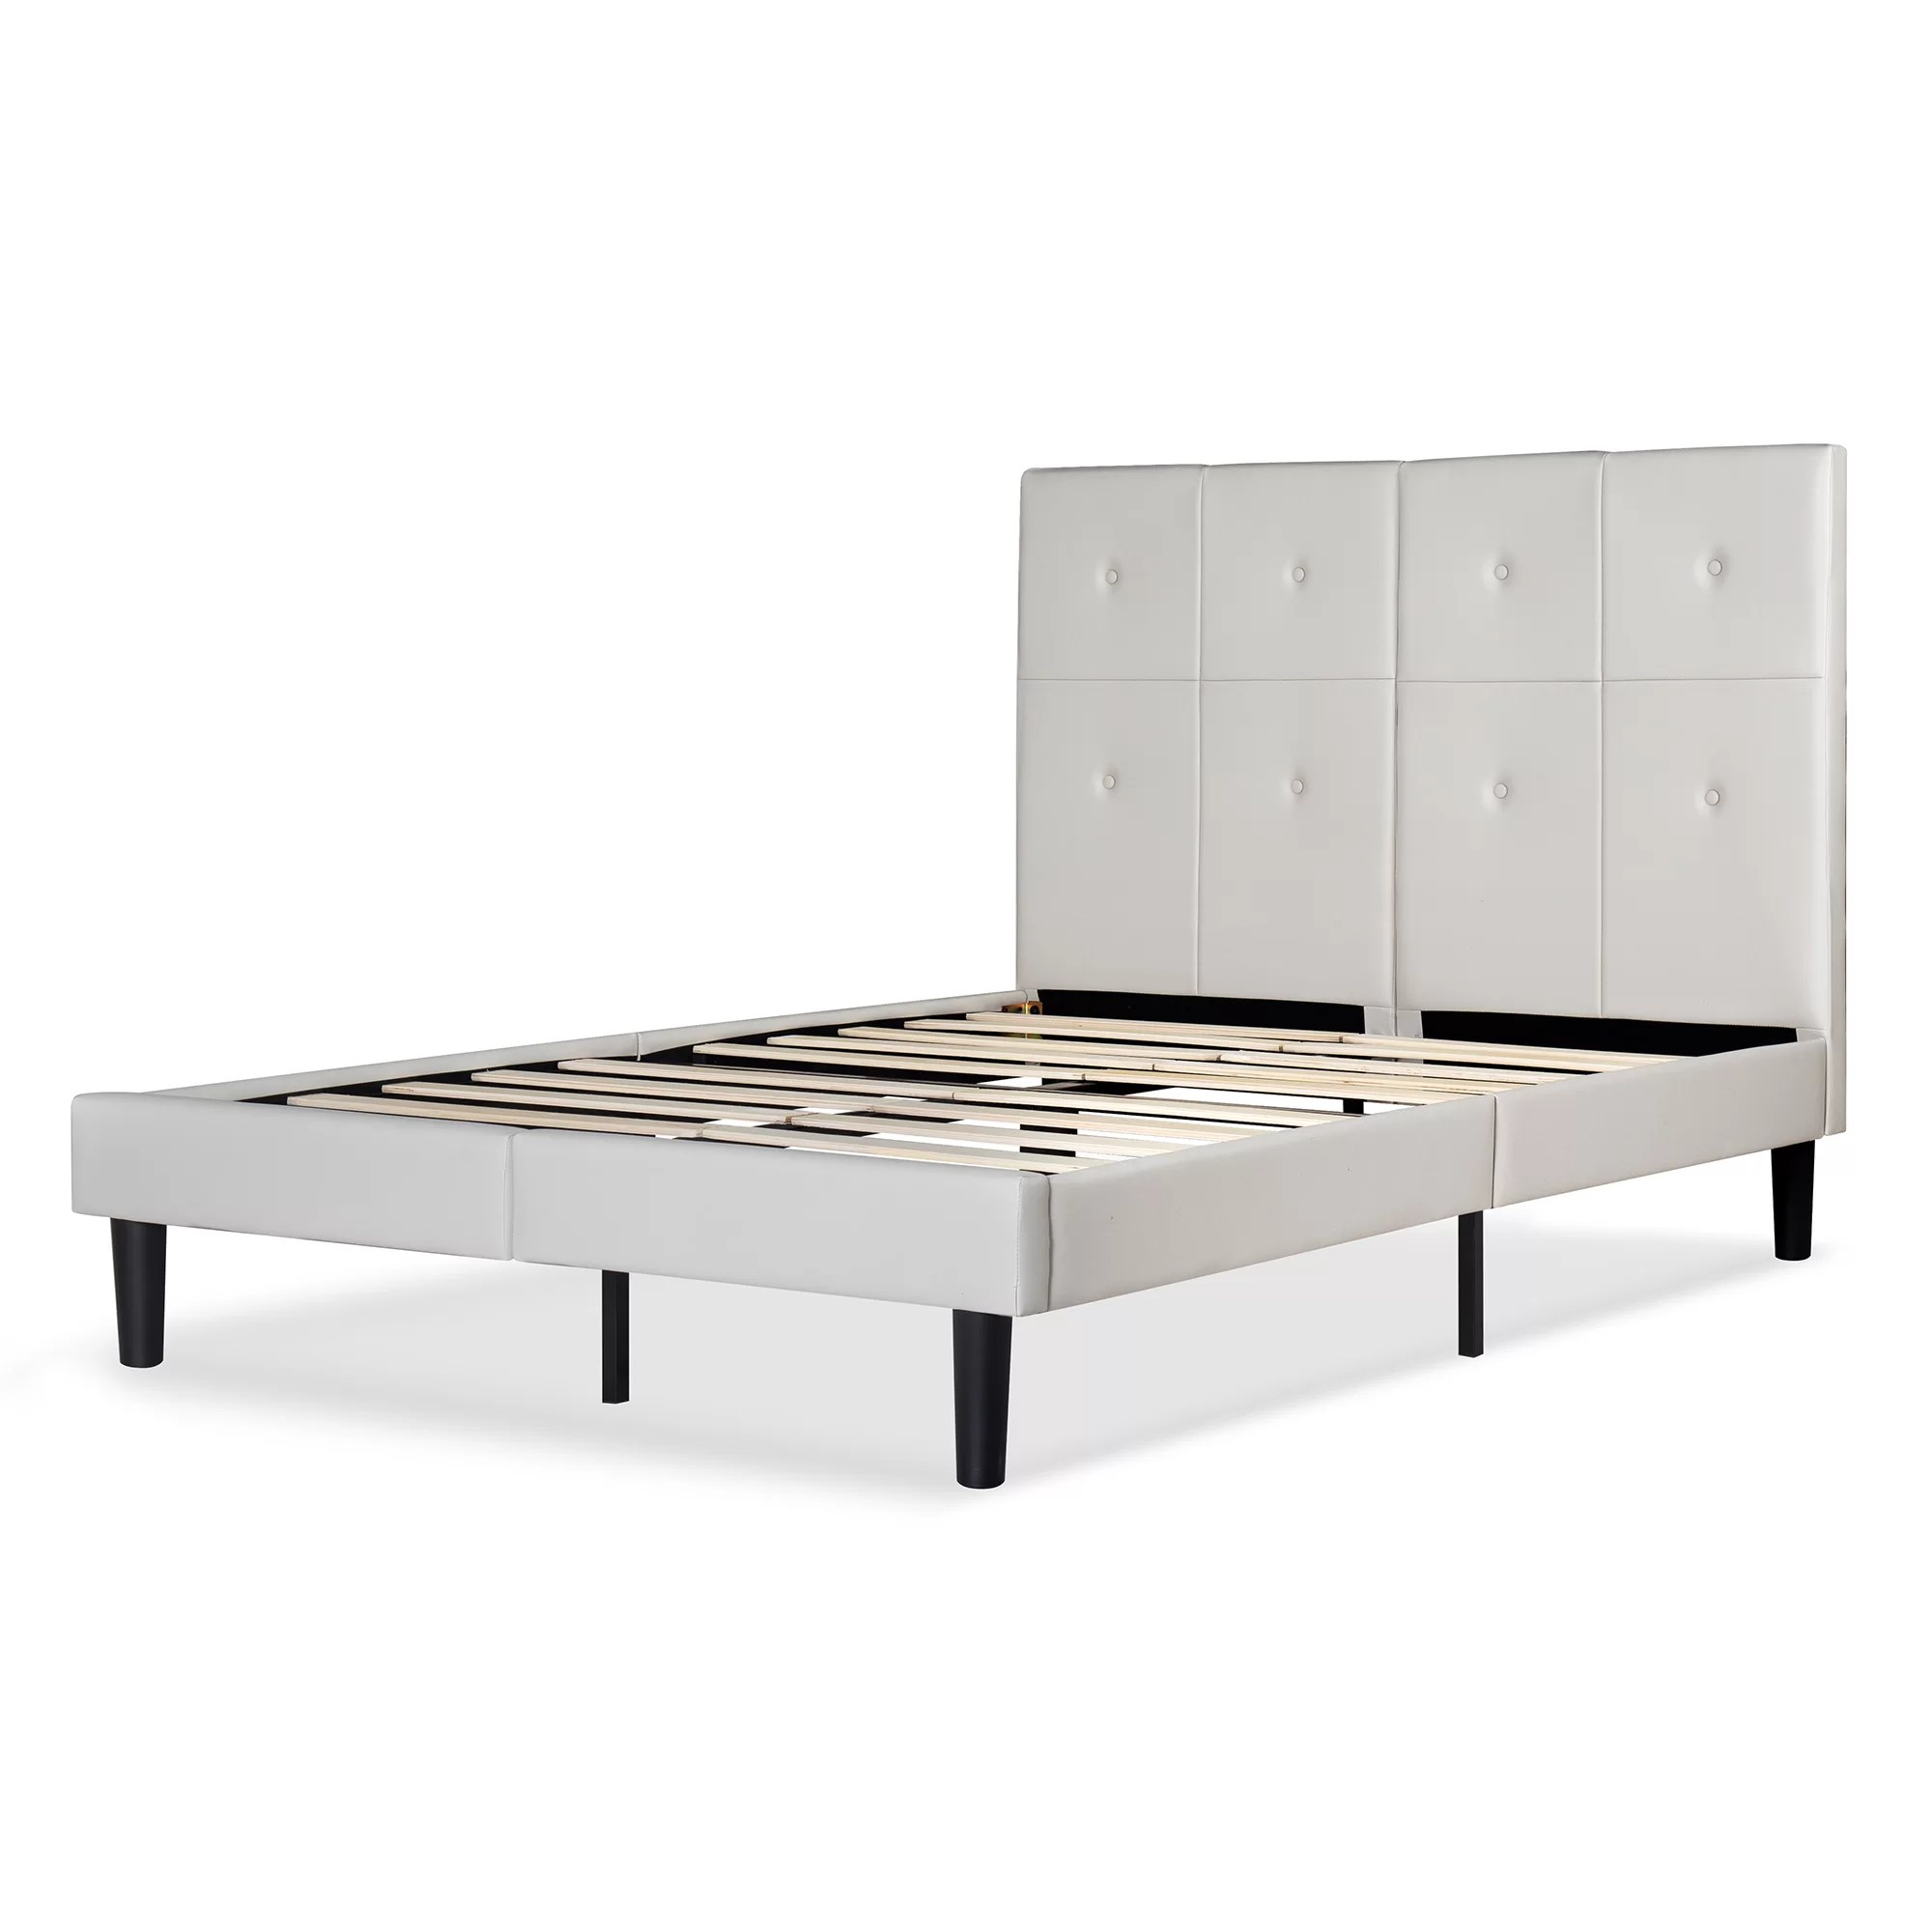 Dura Beds Mattress Comforest Dura Bed Frame